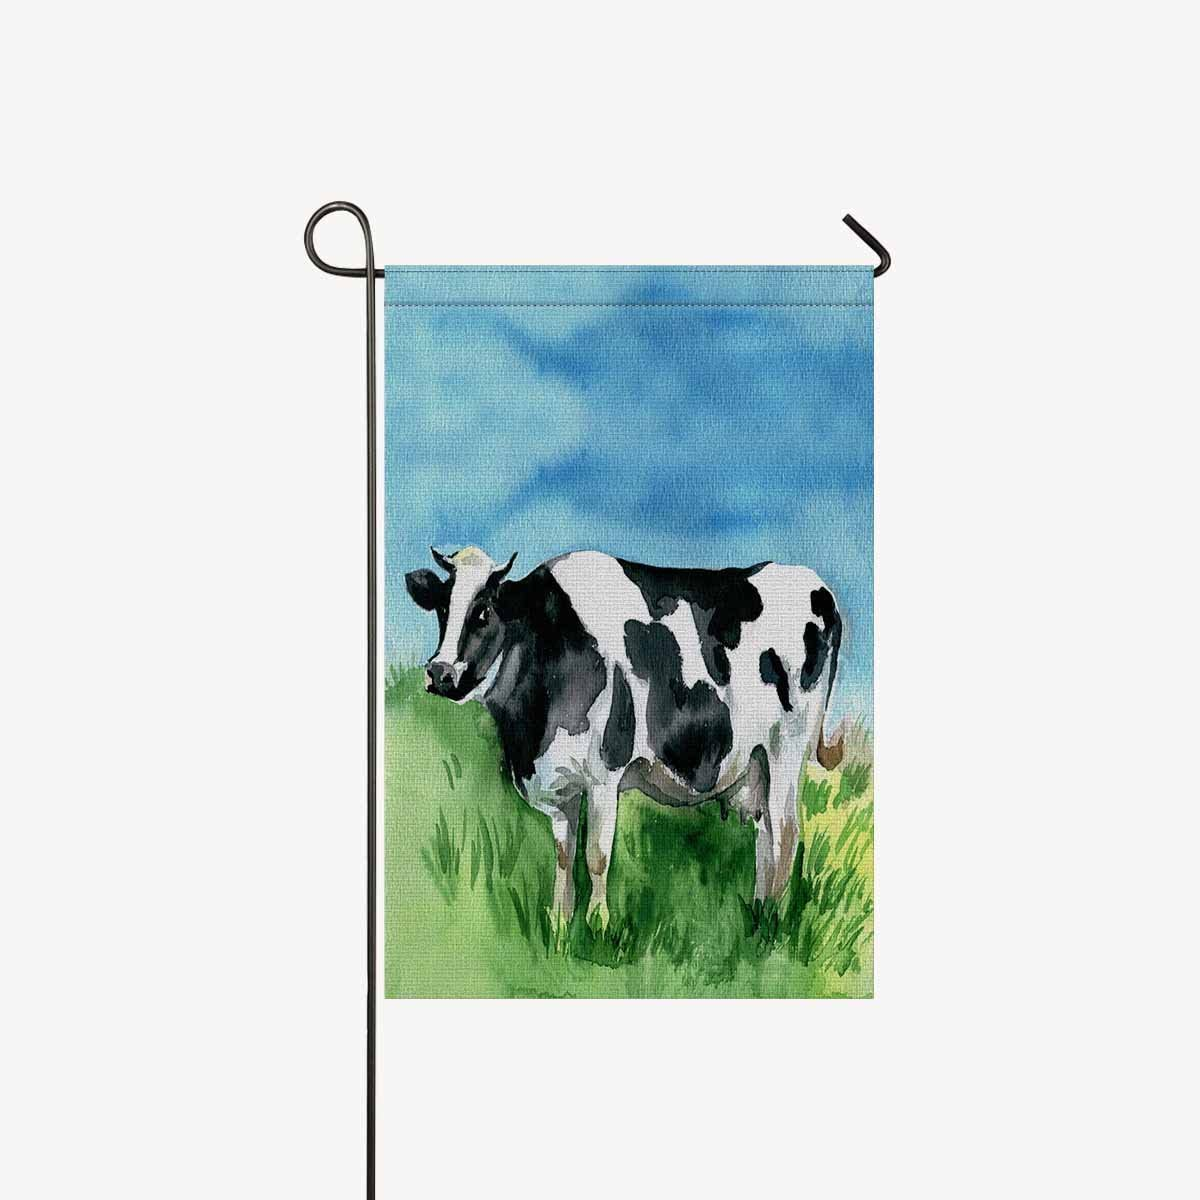 Amazon Com Interestprint Garden Flag House Banner Watercolor Dairy Cow Cattle Funny Animal Decorative Yard Flag For Wishing Party Home Outdoor Decor Polyester 12 X 18 Without Flagpole Garden Outdoor